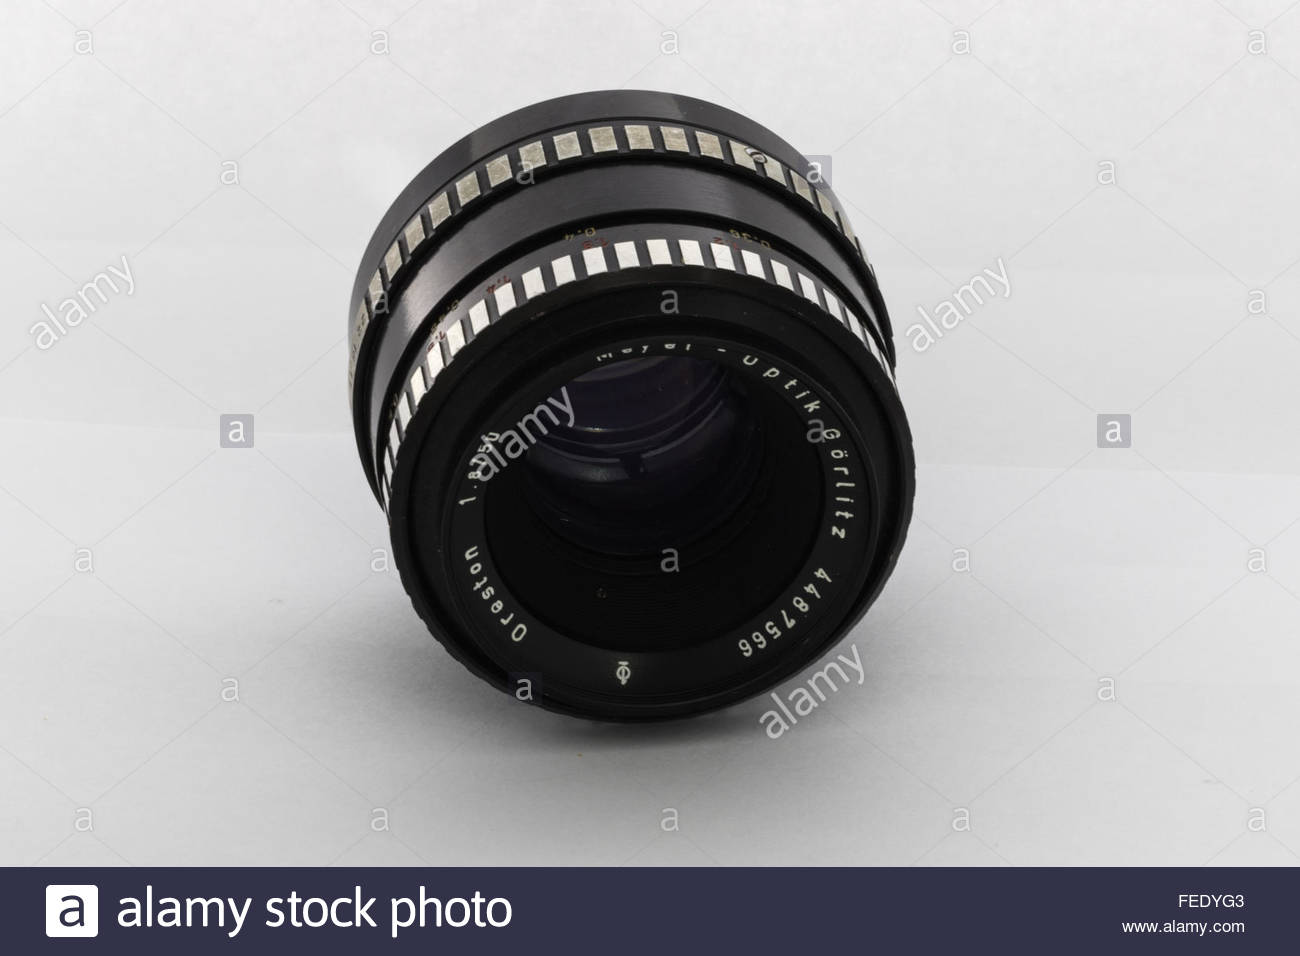 A f/1.8 50mm Meyer-Optik Oreston 35mm film camera lens.Made in the1970's in East Germany. - Stock Image